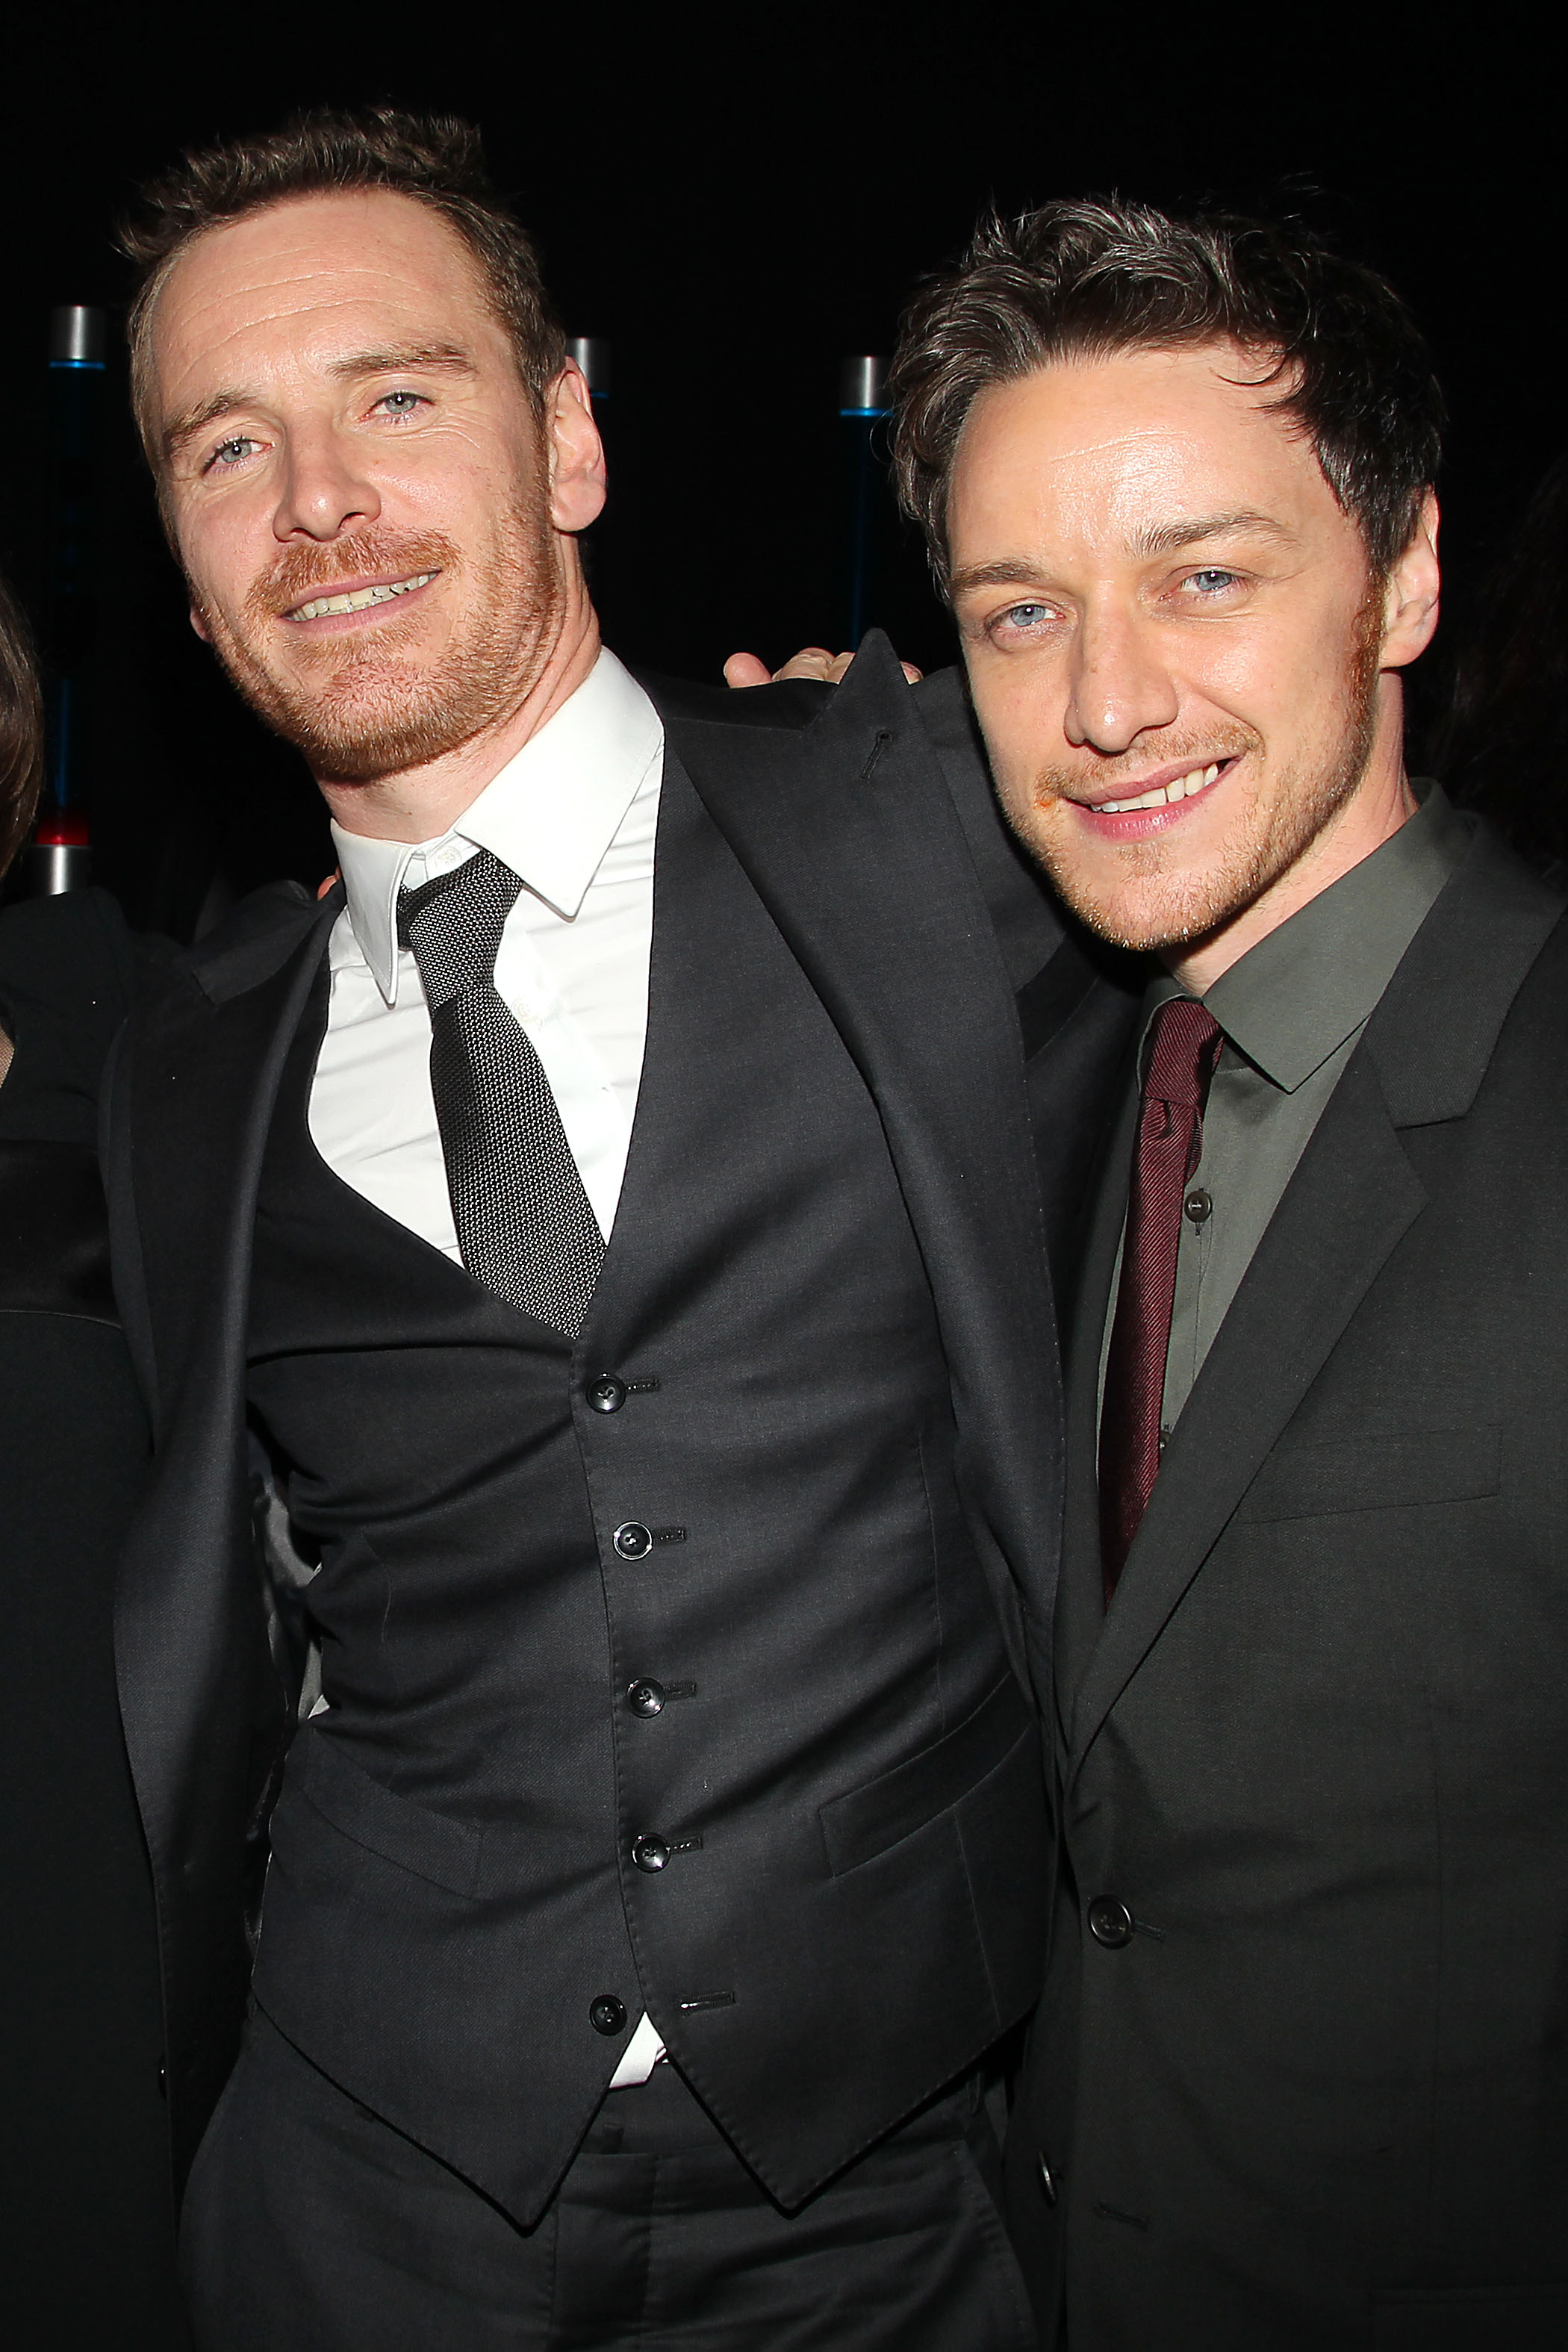 McFassy at the After Party